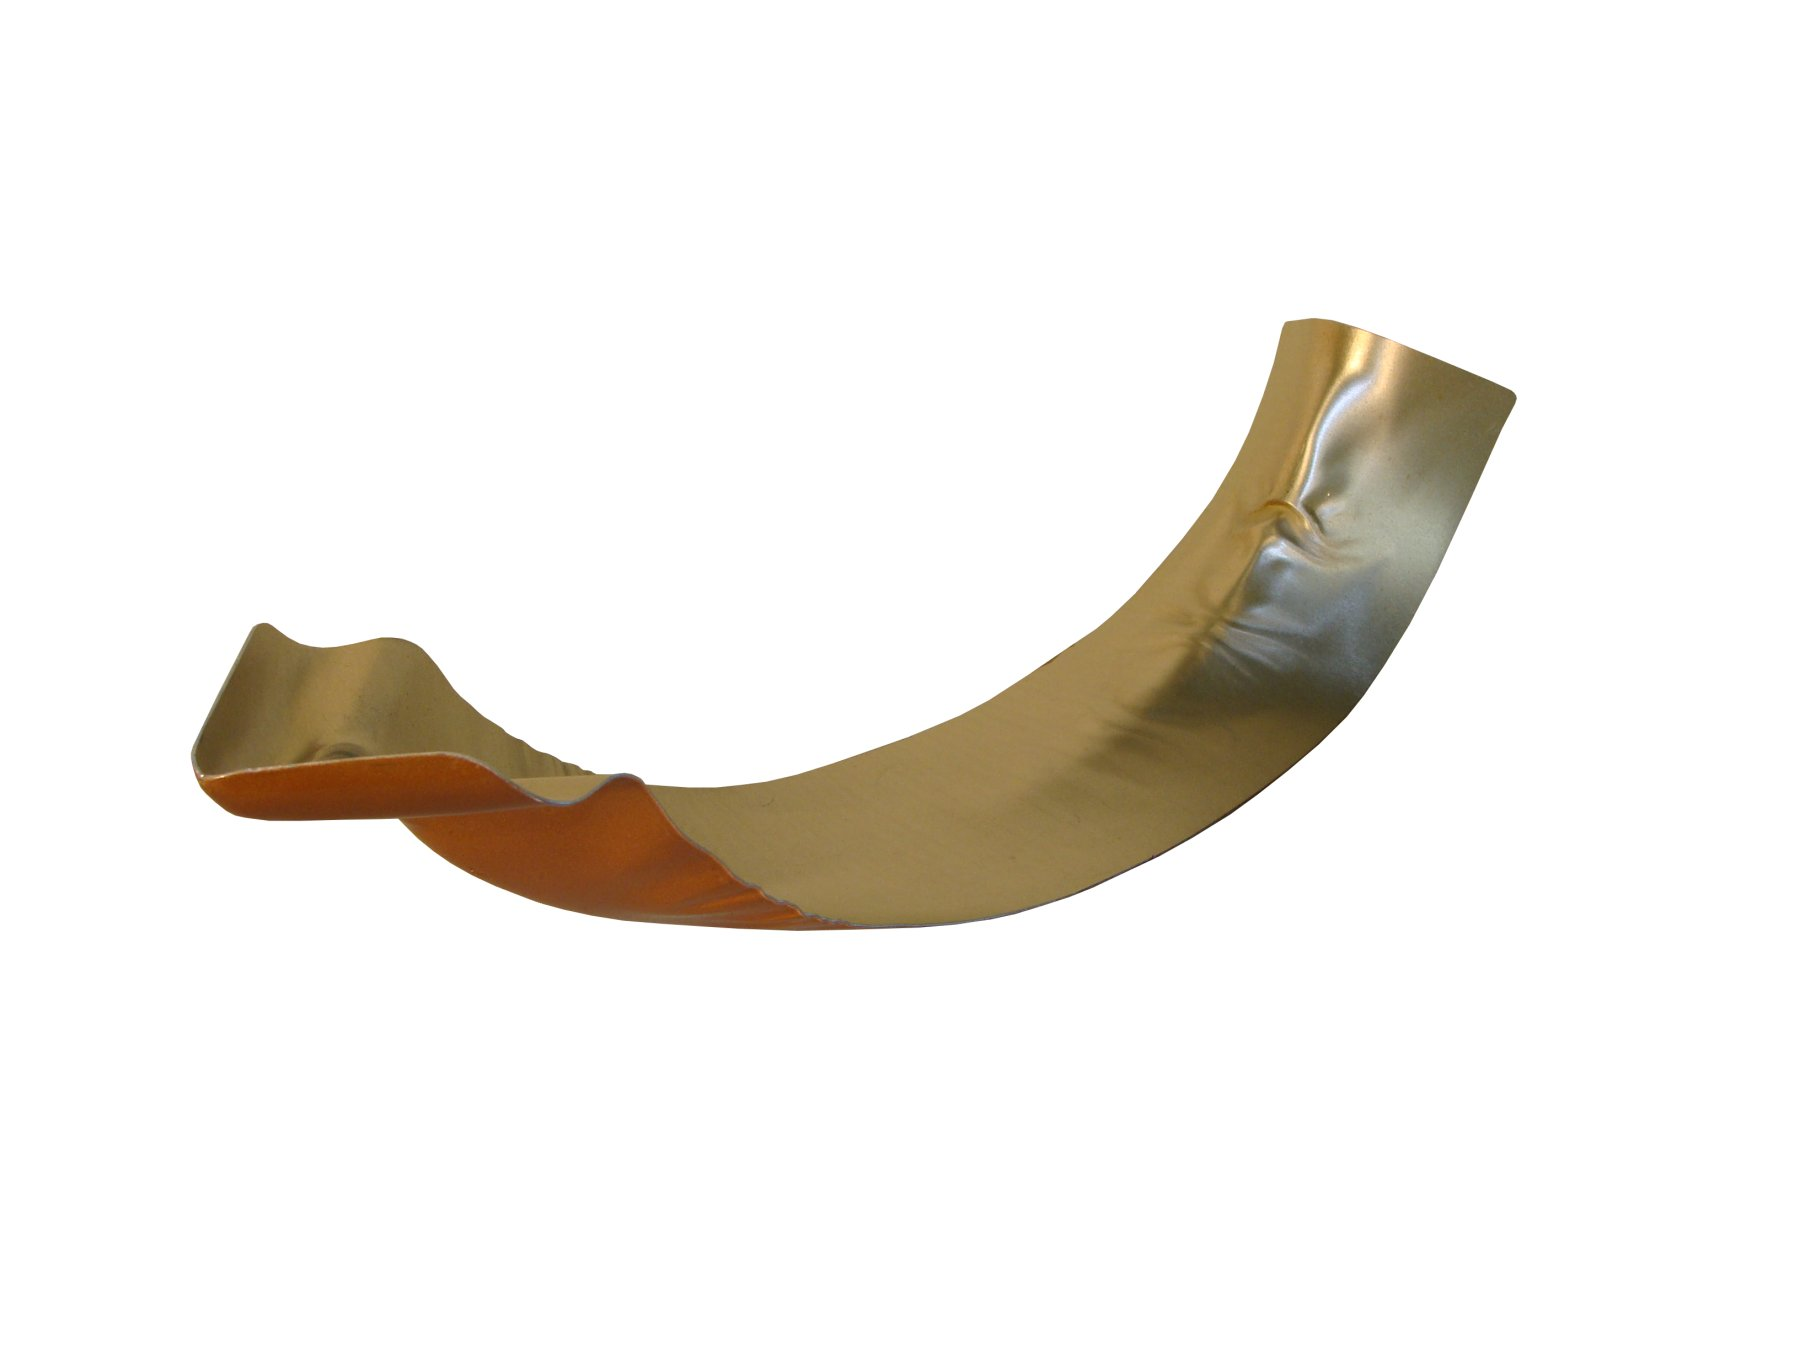 Copper Penny Miters Or Corner Pieces Are The Gutter